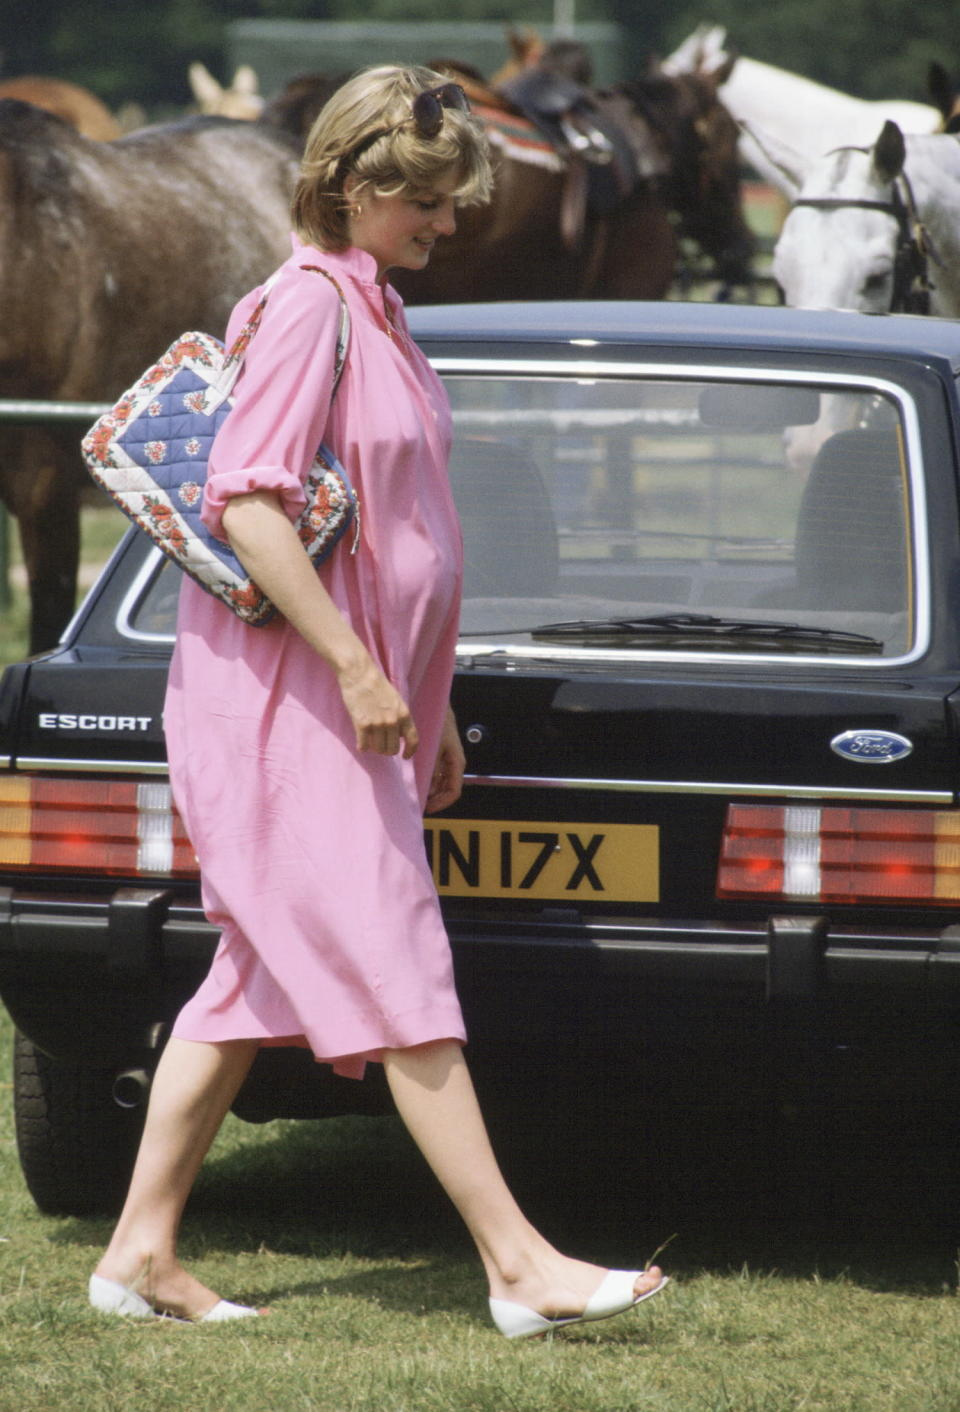 <p>Princess Diana wears a pink caftan-style dress for polo at Windsor while pregnant with Prince William. (Photo: Getty Images) </p>